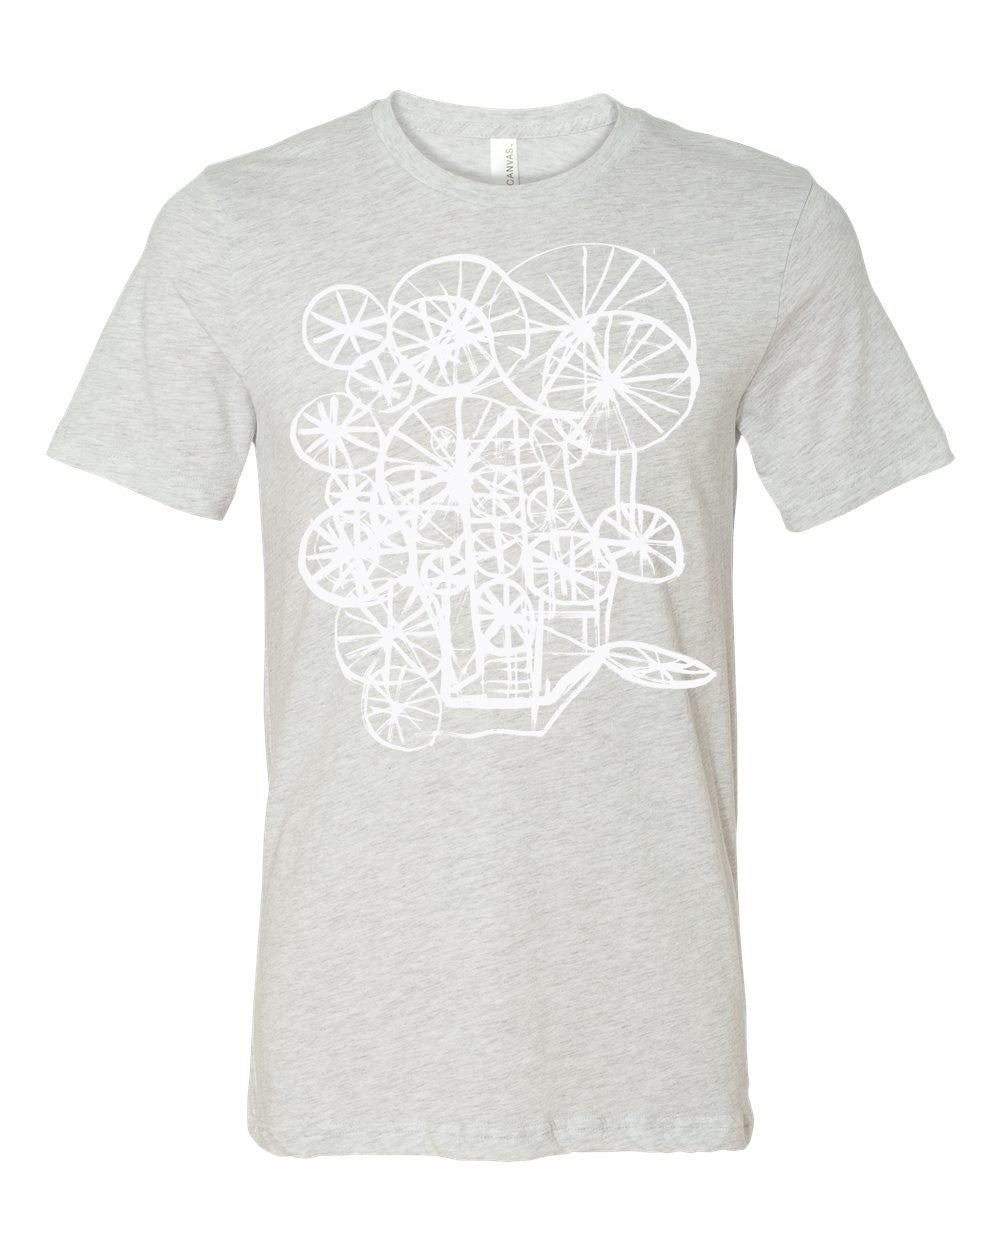 Image of Wheel of Life, T-Shirt, 2017